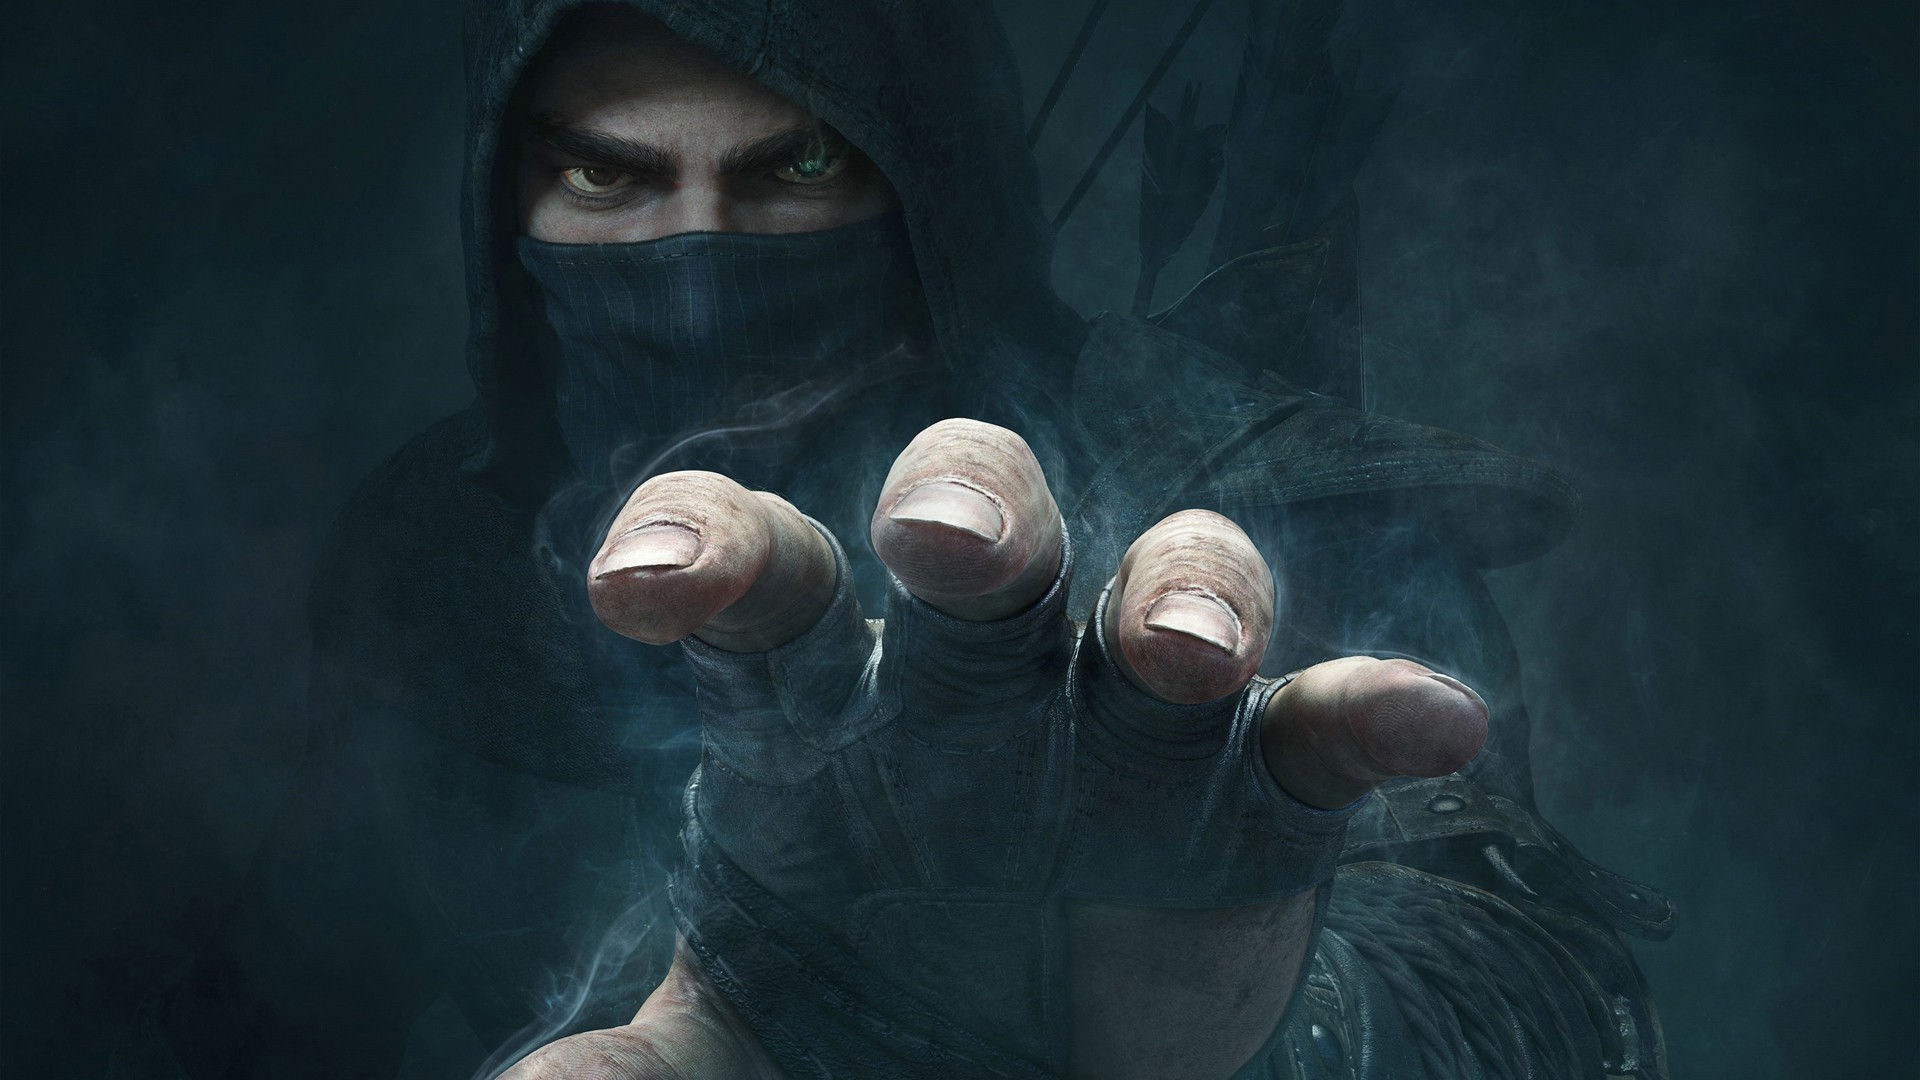 Wallpapers for Thief Game › Resolution 1920x1080 px